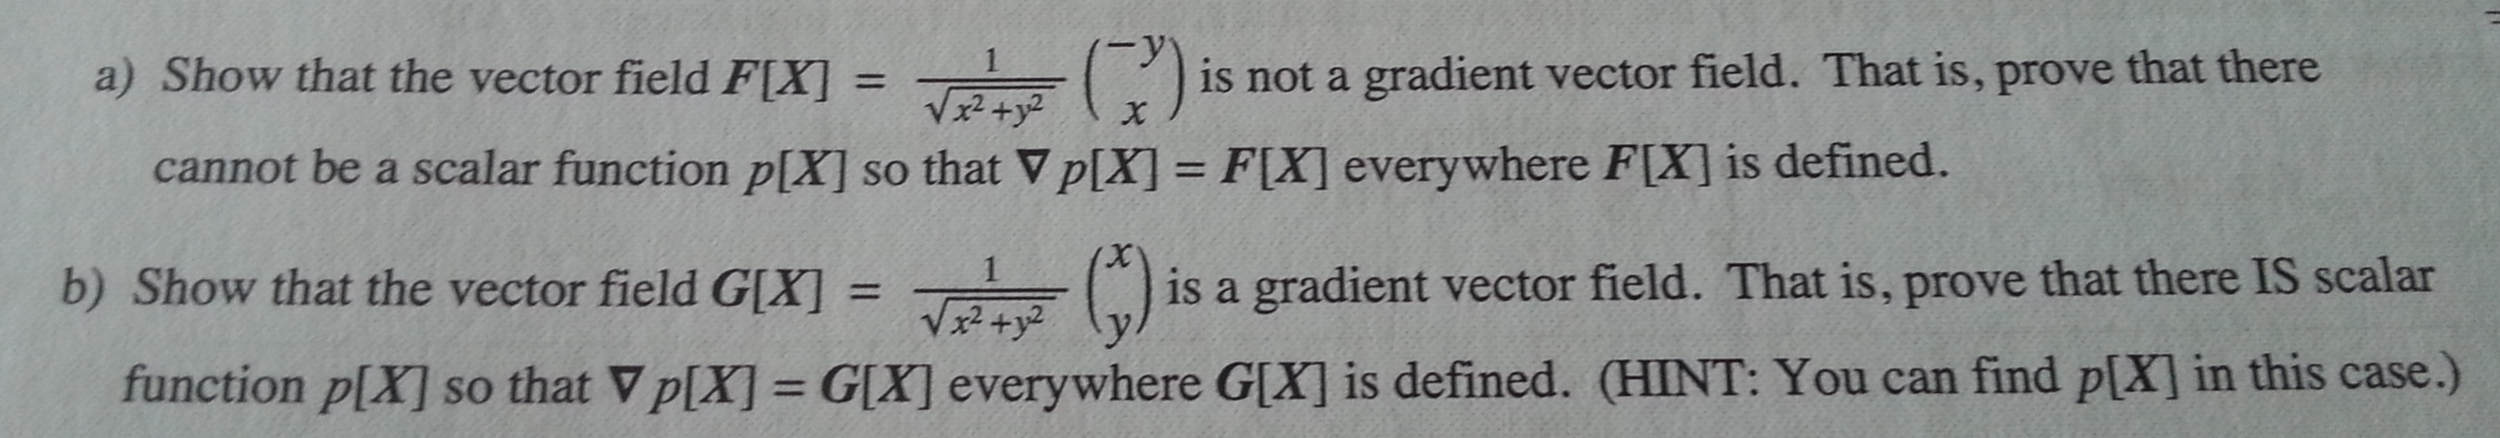 show that the vector field is not a gradient vecto